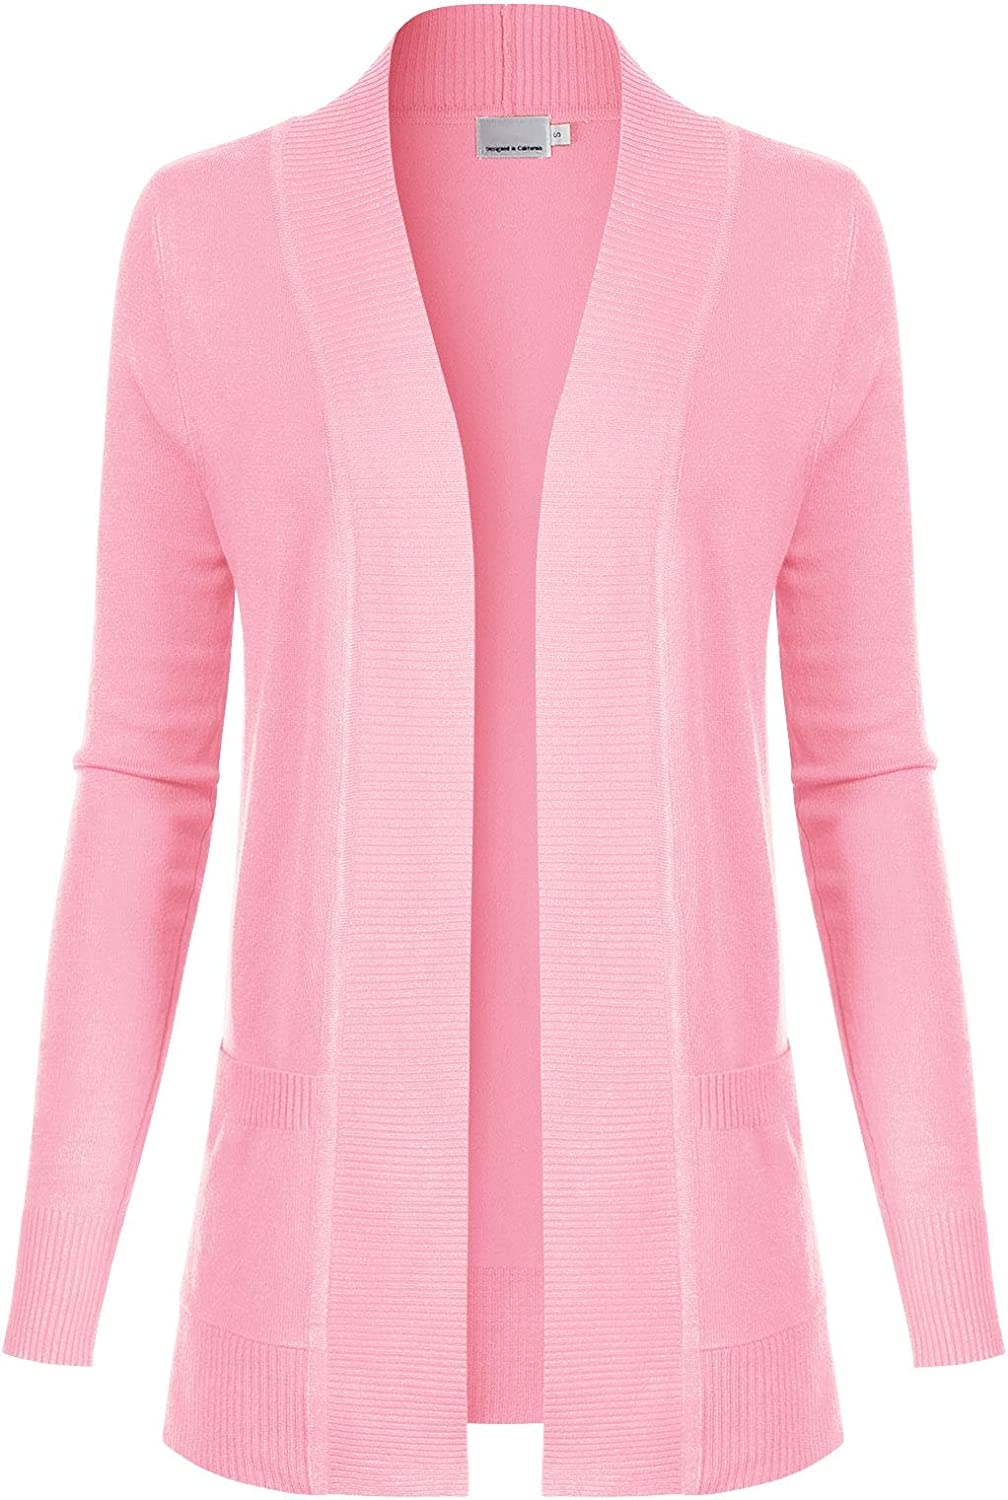 Design by Olivia Women's Open Front Long Sleeve Classic Knit Cardigan